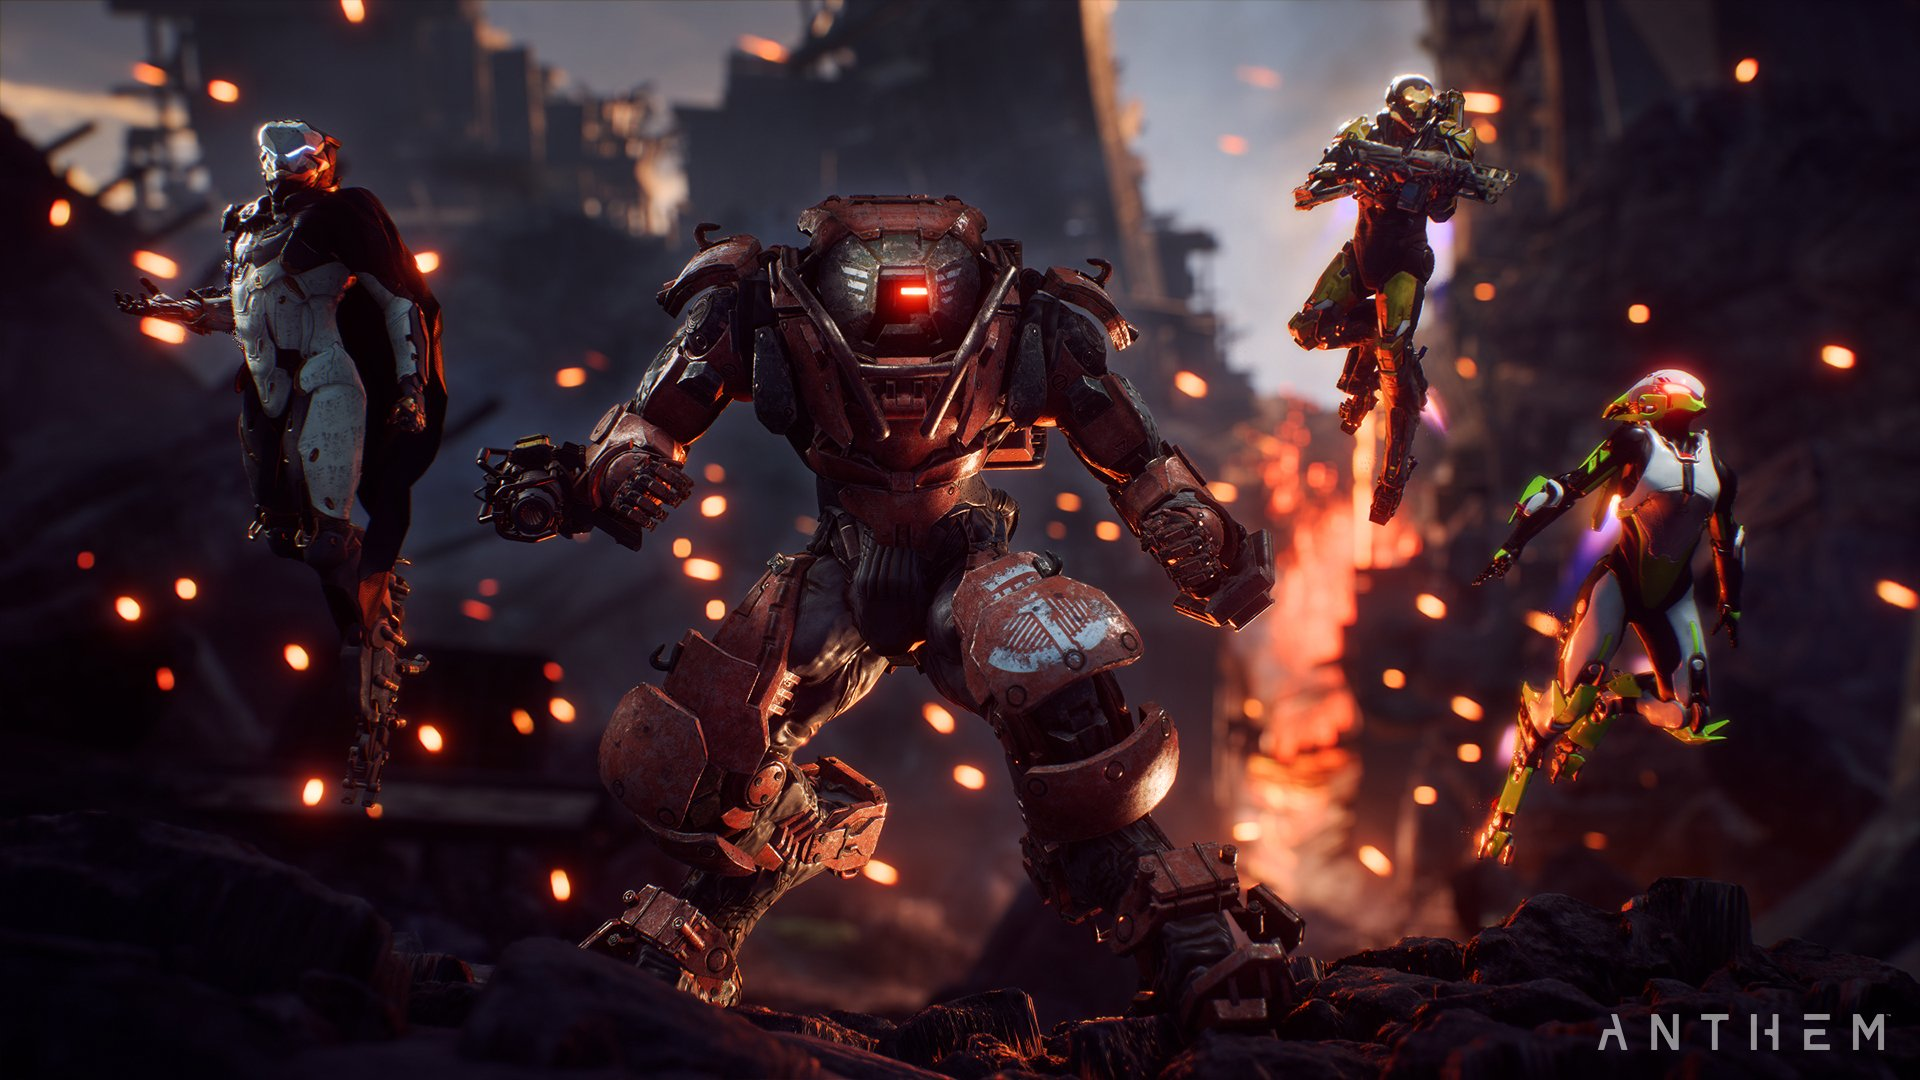 Anthem hands-on preview - Javelins